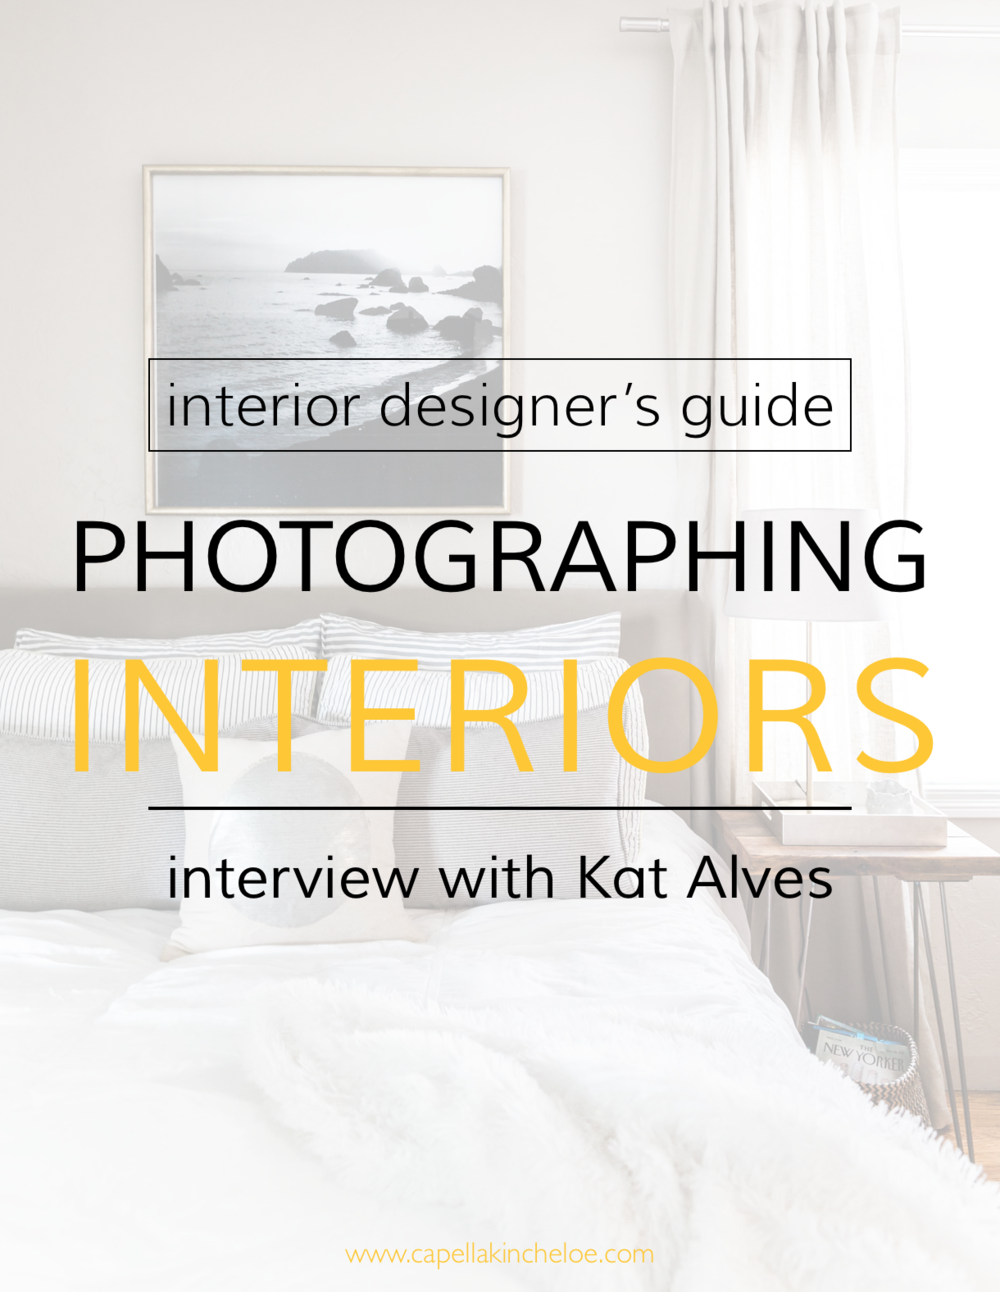 Wondering how to get your interior design projects to look as good as they do in magazines?  Professional Interiors Photographer Kat Alves shares her tips and tricks to photographing interiors.